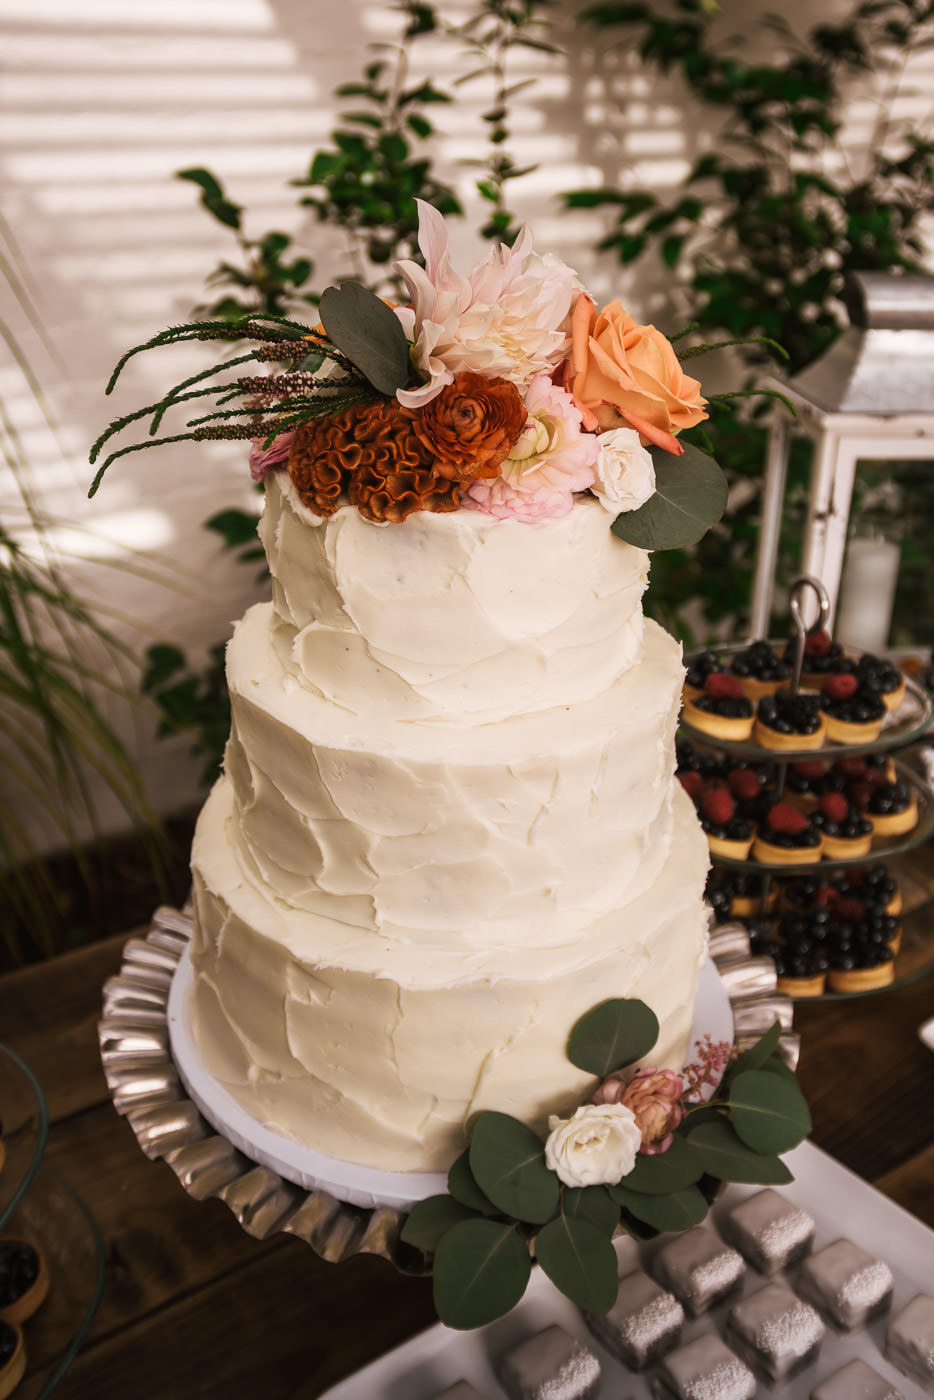 Three tiered wedding cake with flower topper and eucalyptus details.